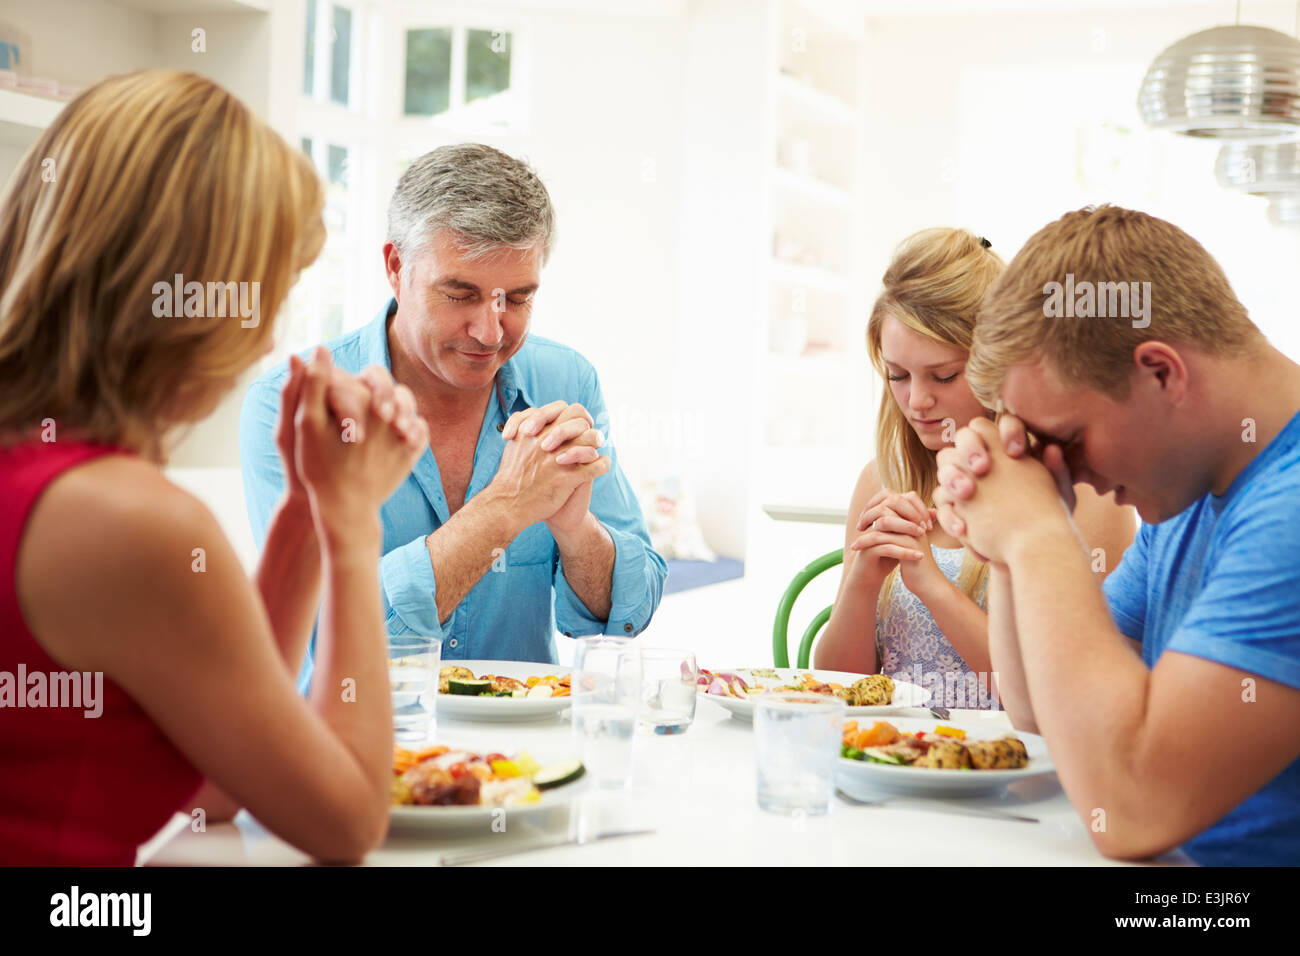 Family Saying Prayer Before Eating Meal At Home Together - Stock Image